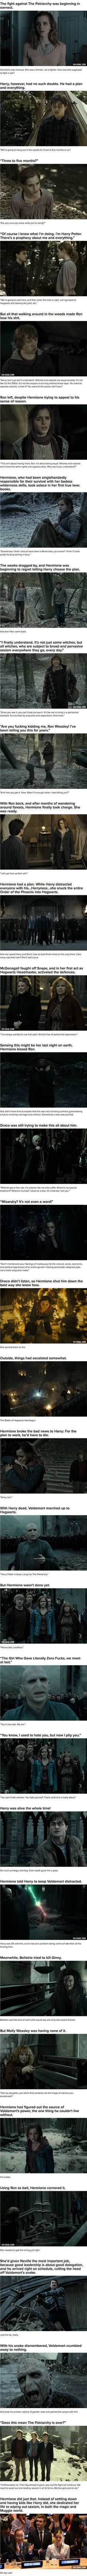 """If Hermione Were The Main Character In """"Harry Potter"""" (Part 5 Of 5)"""